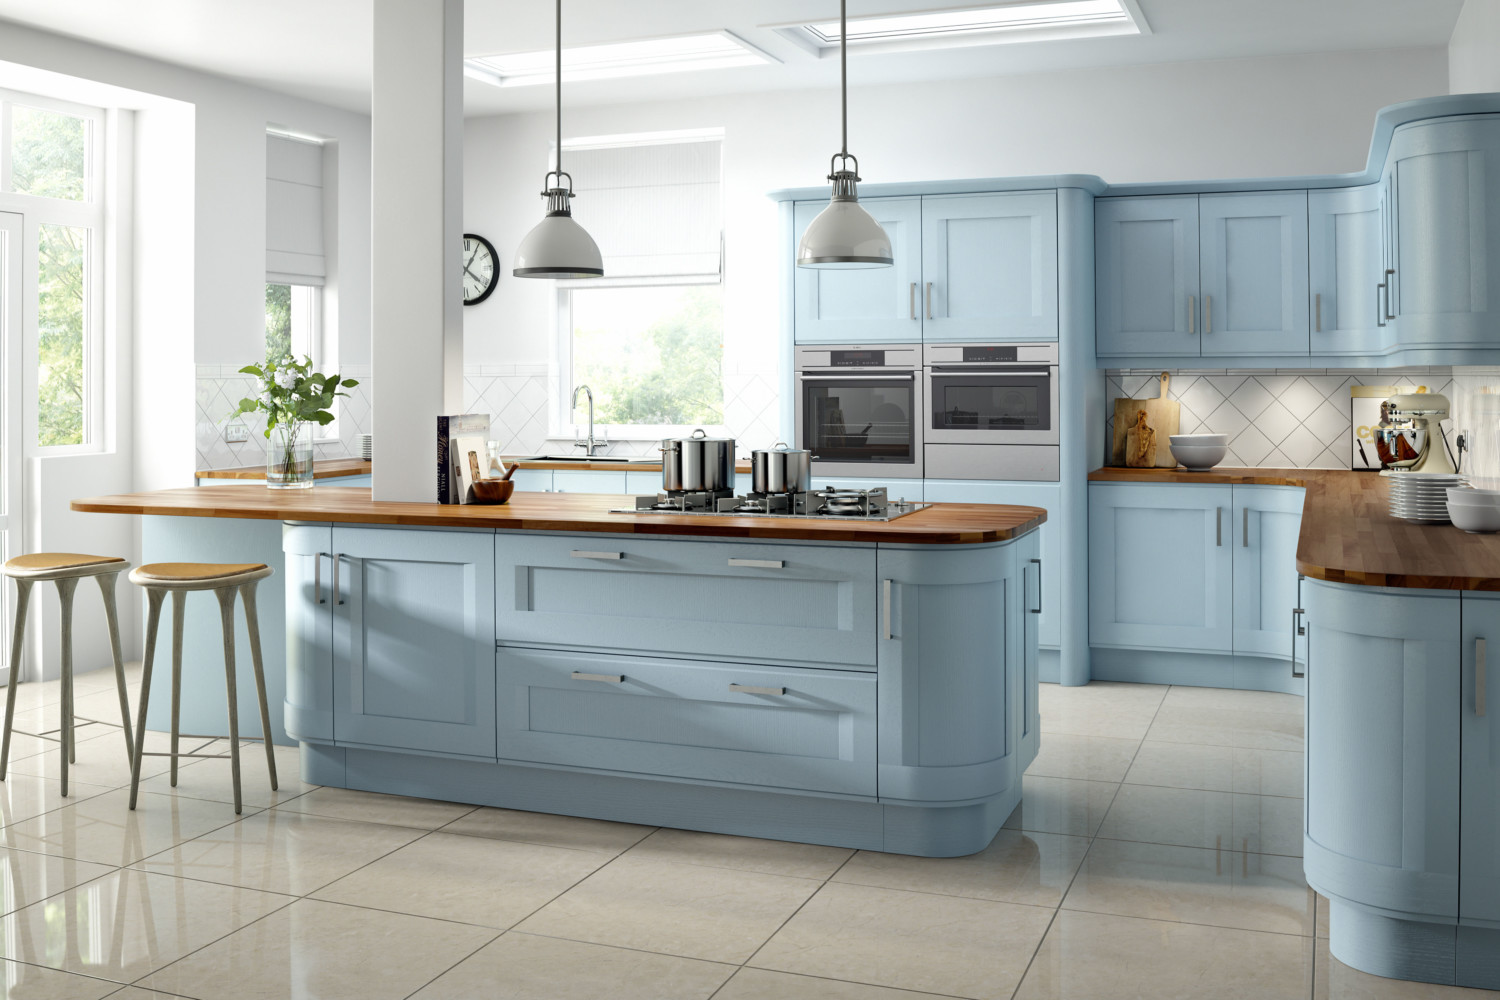 Kitchen company in Southampton